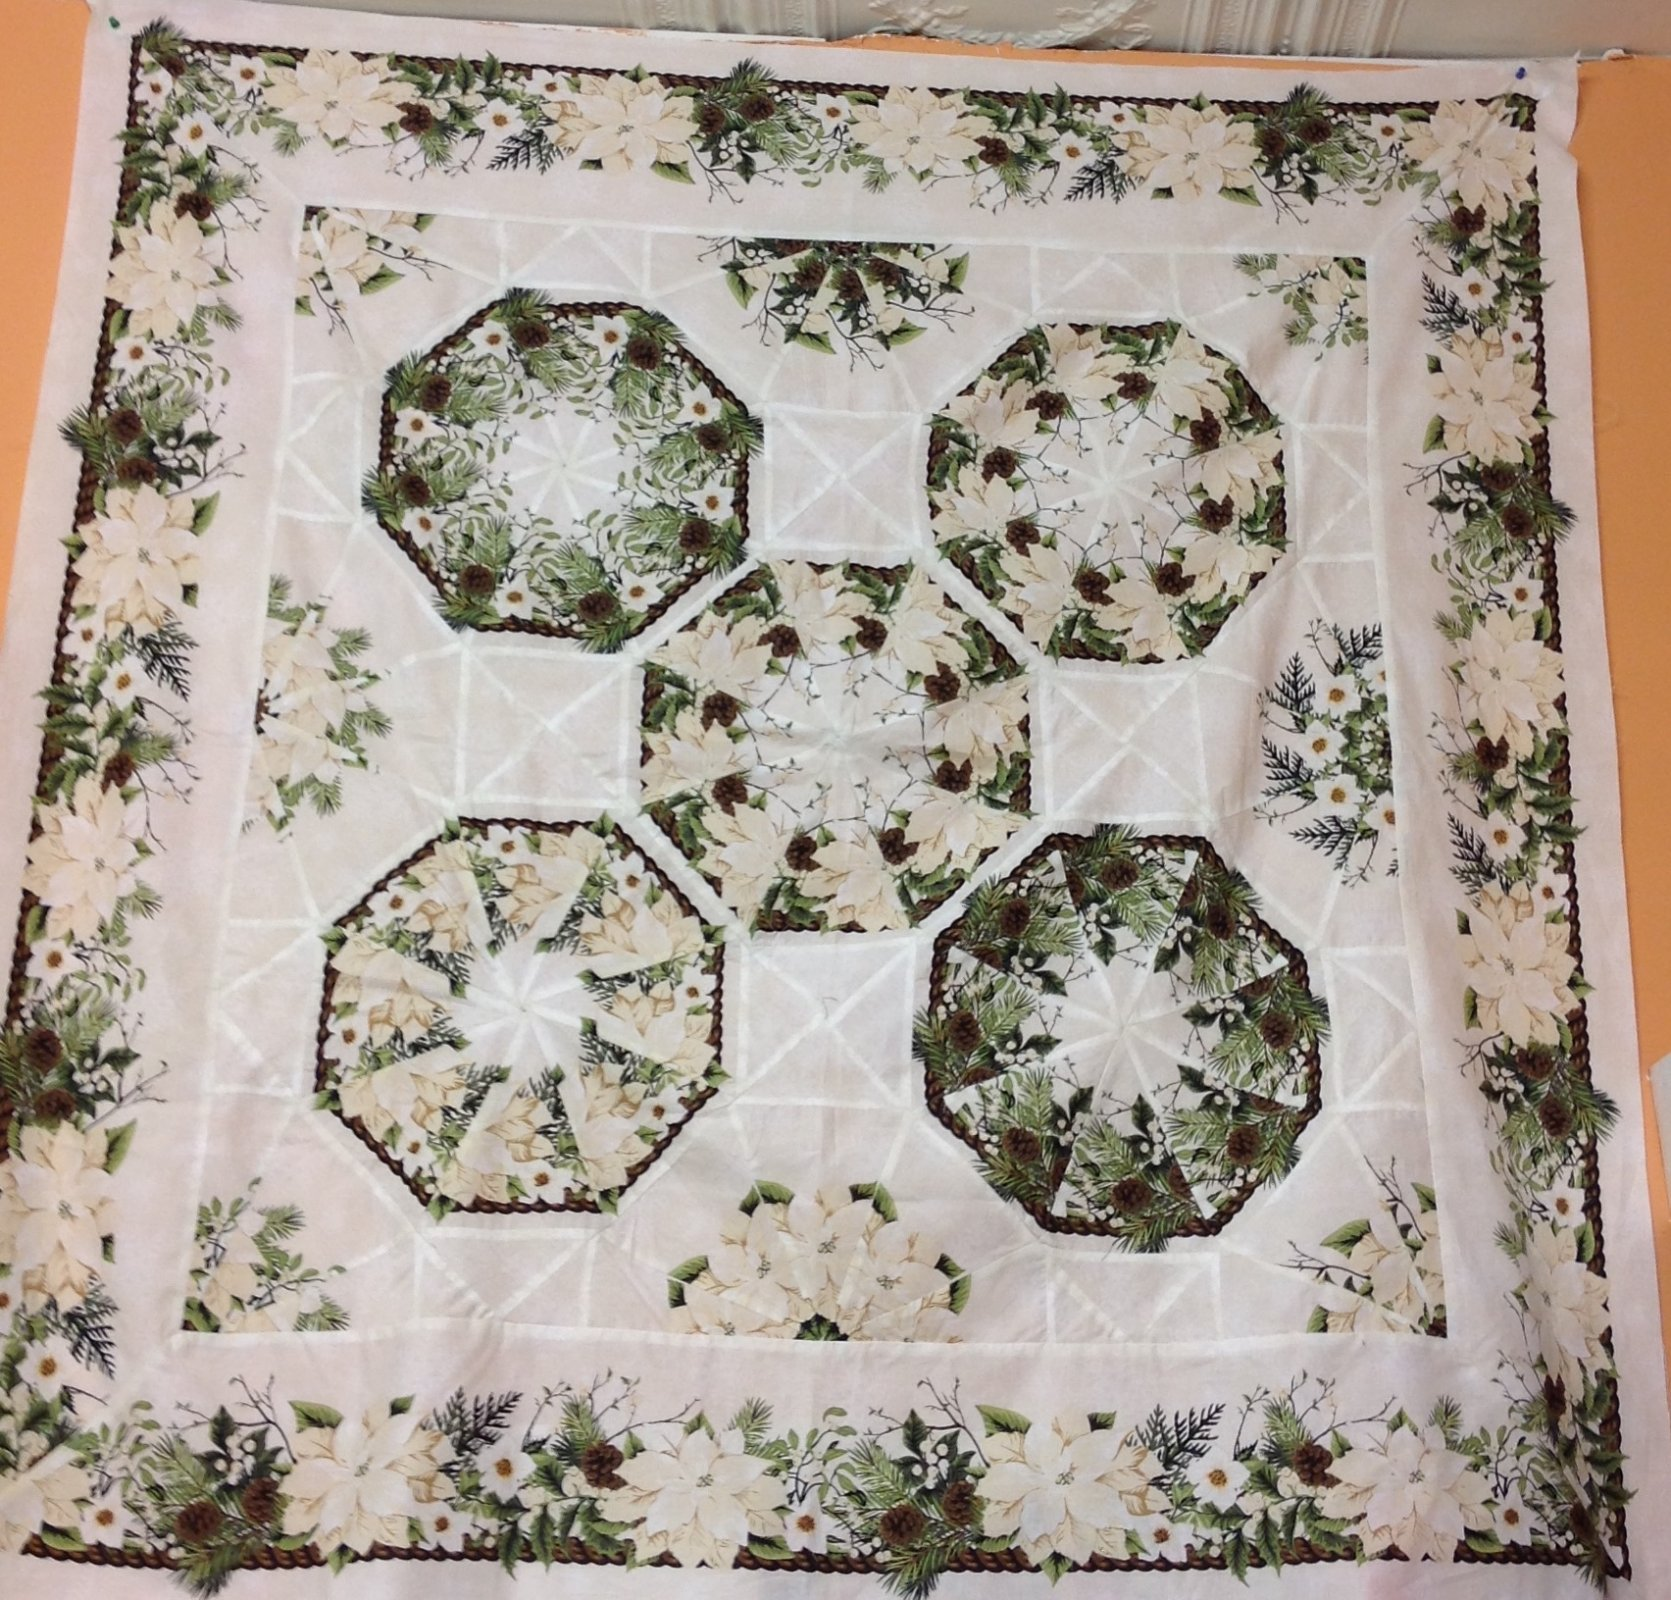 One-Fabric Kaleidoscope-Quilt Top